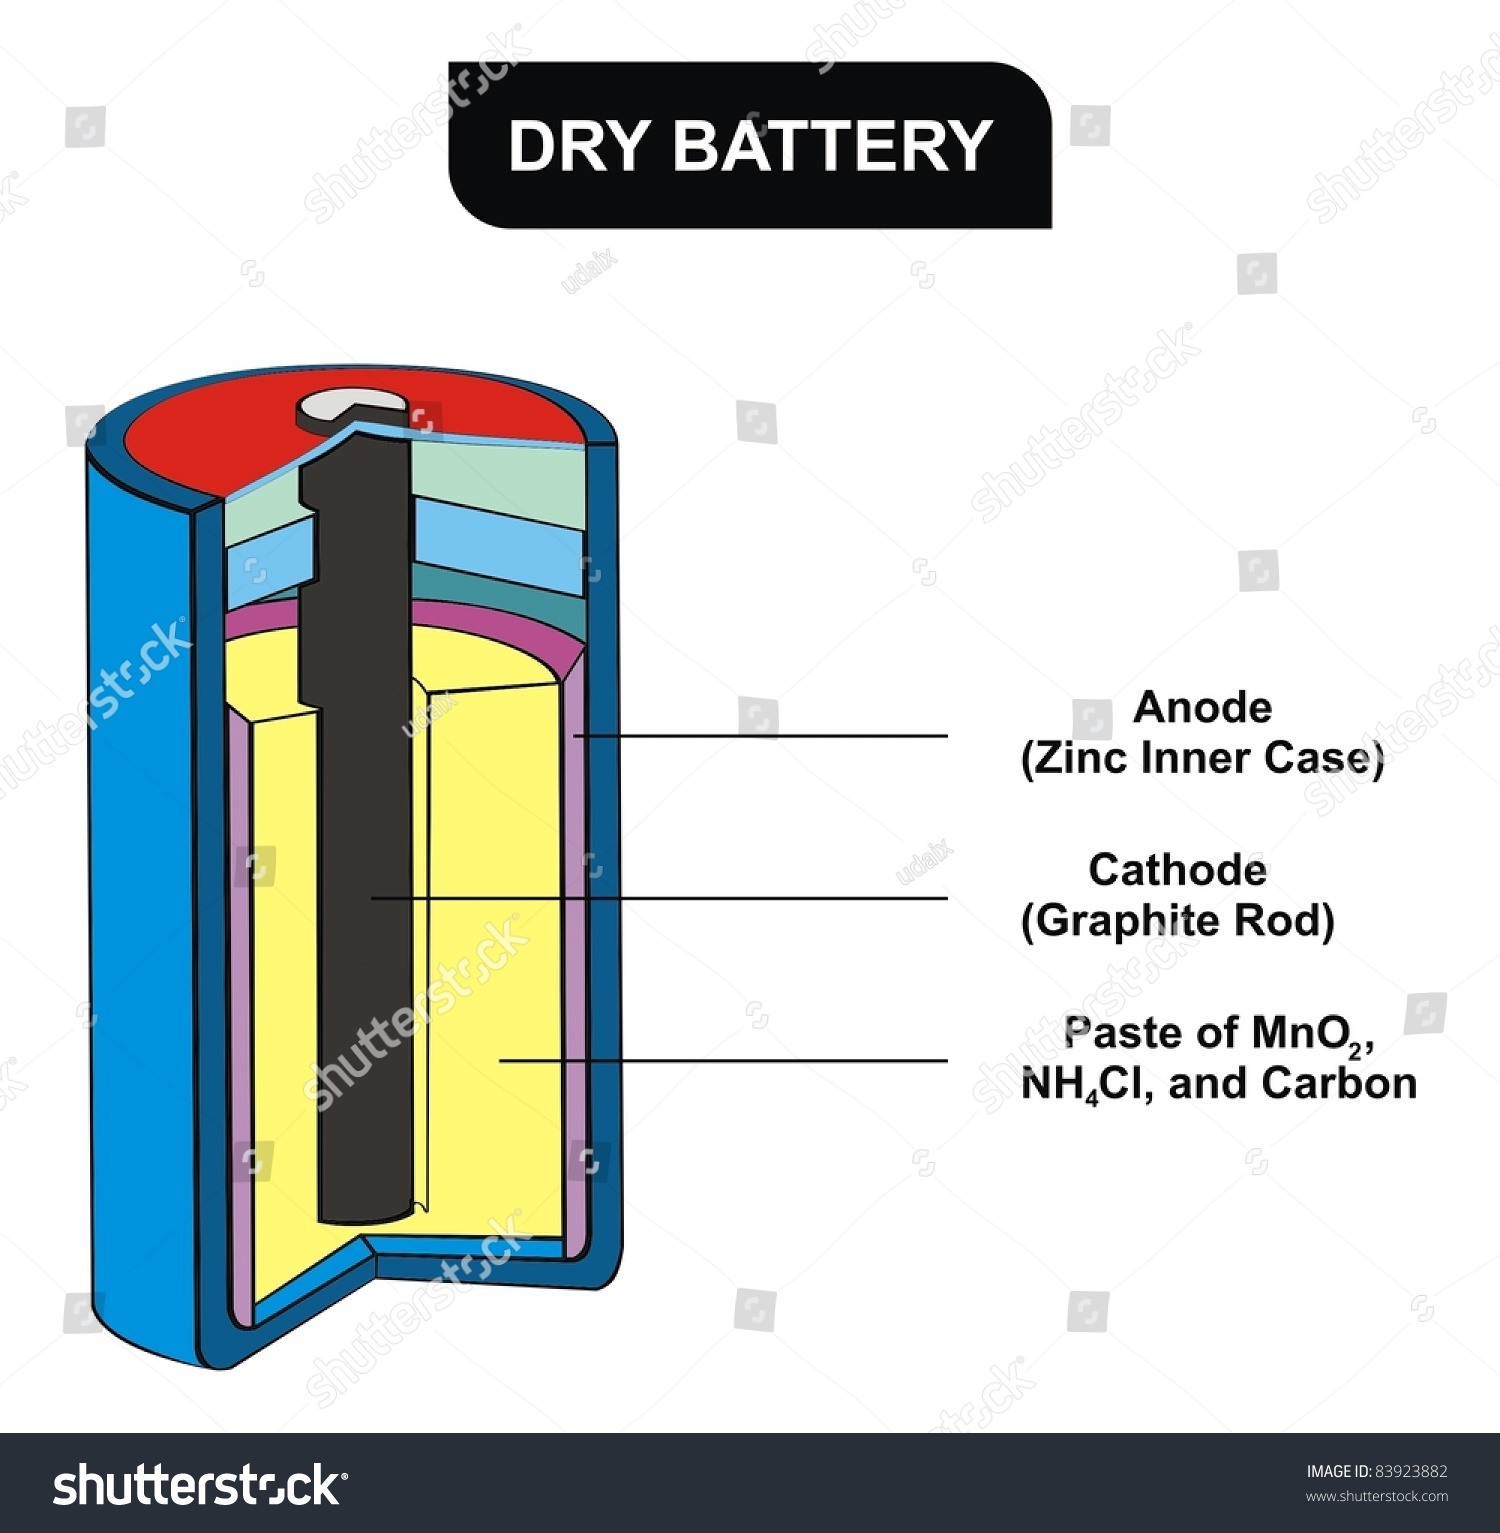 Dry battery diagram stock photo 83923882 shutterstock dry battery diagram pooptronica